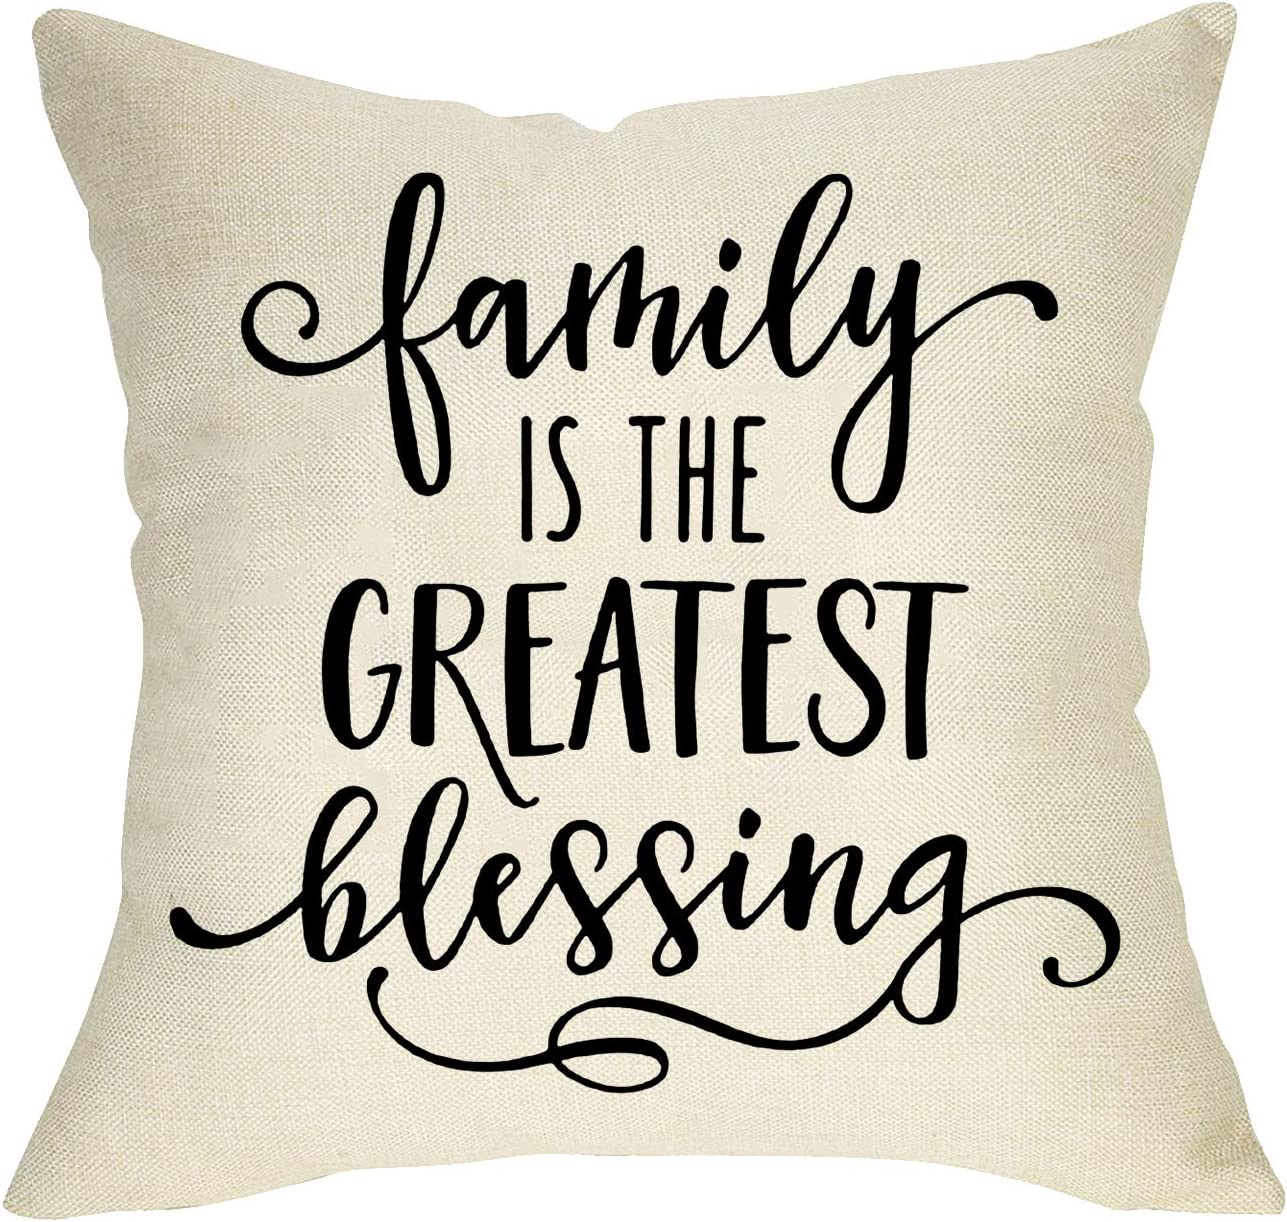 Softxpp Family is The Greatest Blessing Rustic Throw Pillow Cover, Decorative Farmhouse Quotes Cushion Case Home Square Pillowcase Decor for Sofa Couch Decorations Cotton Linen 18'' x 18''